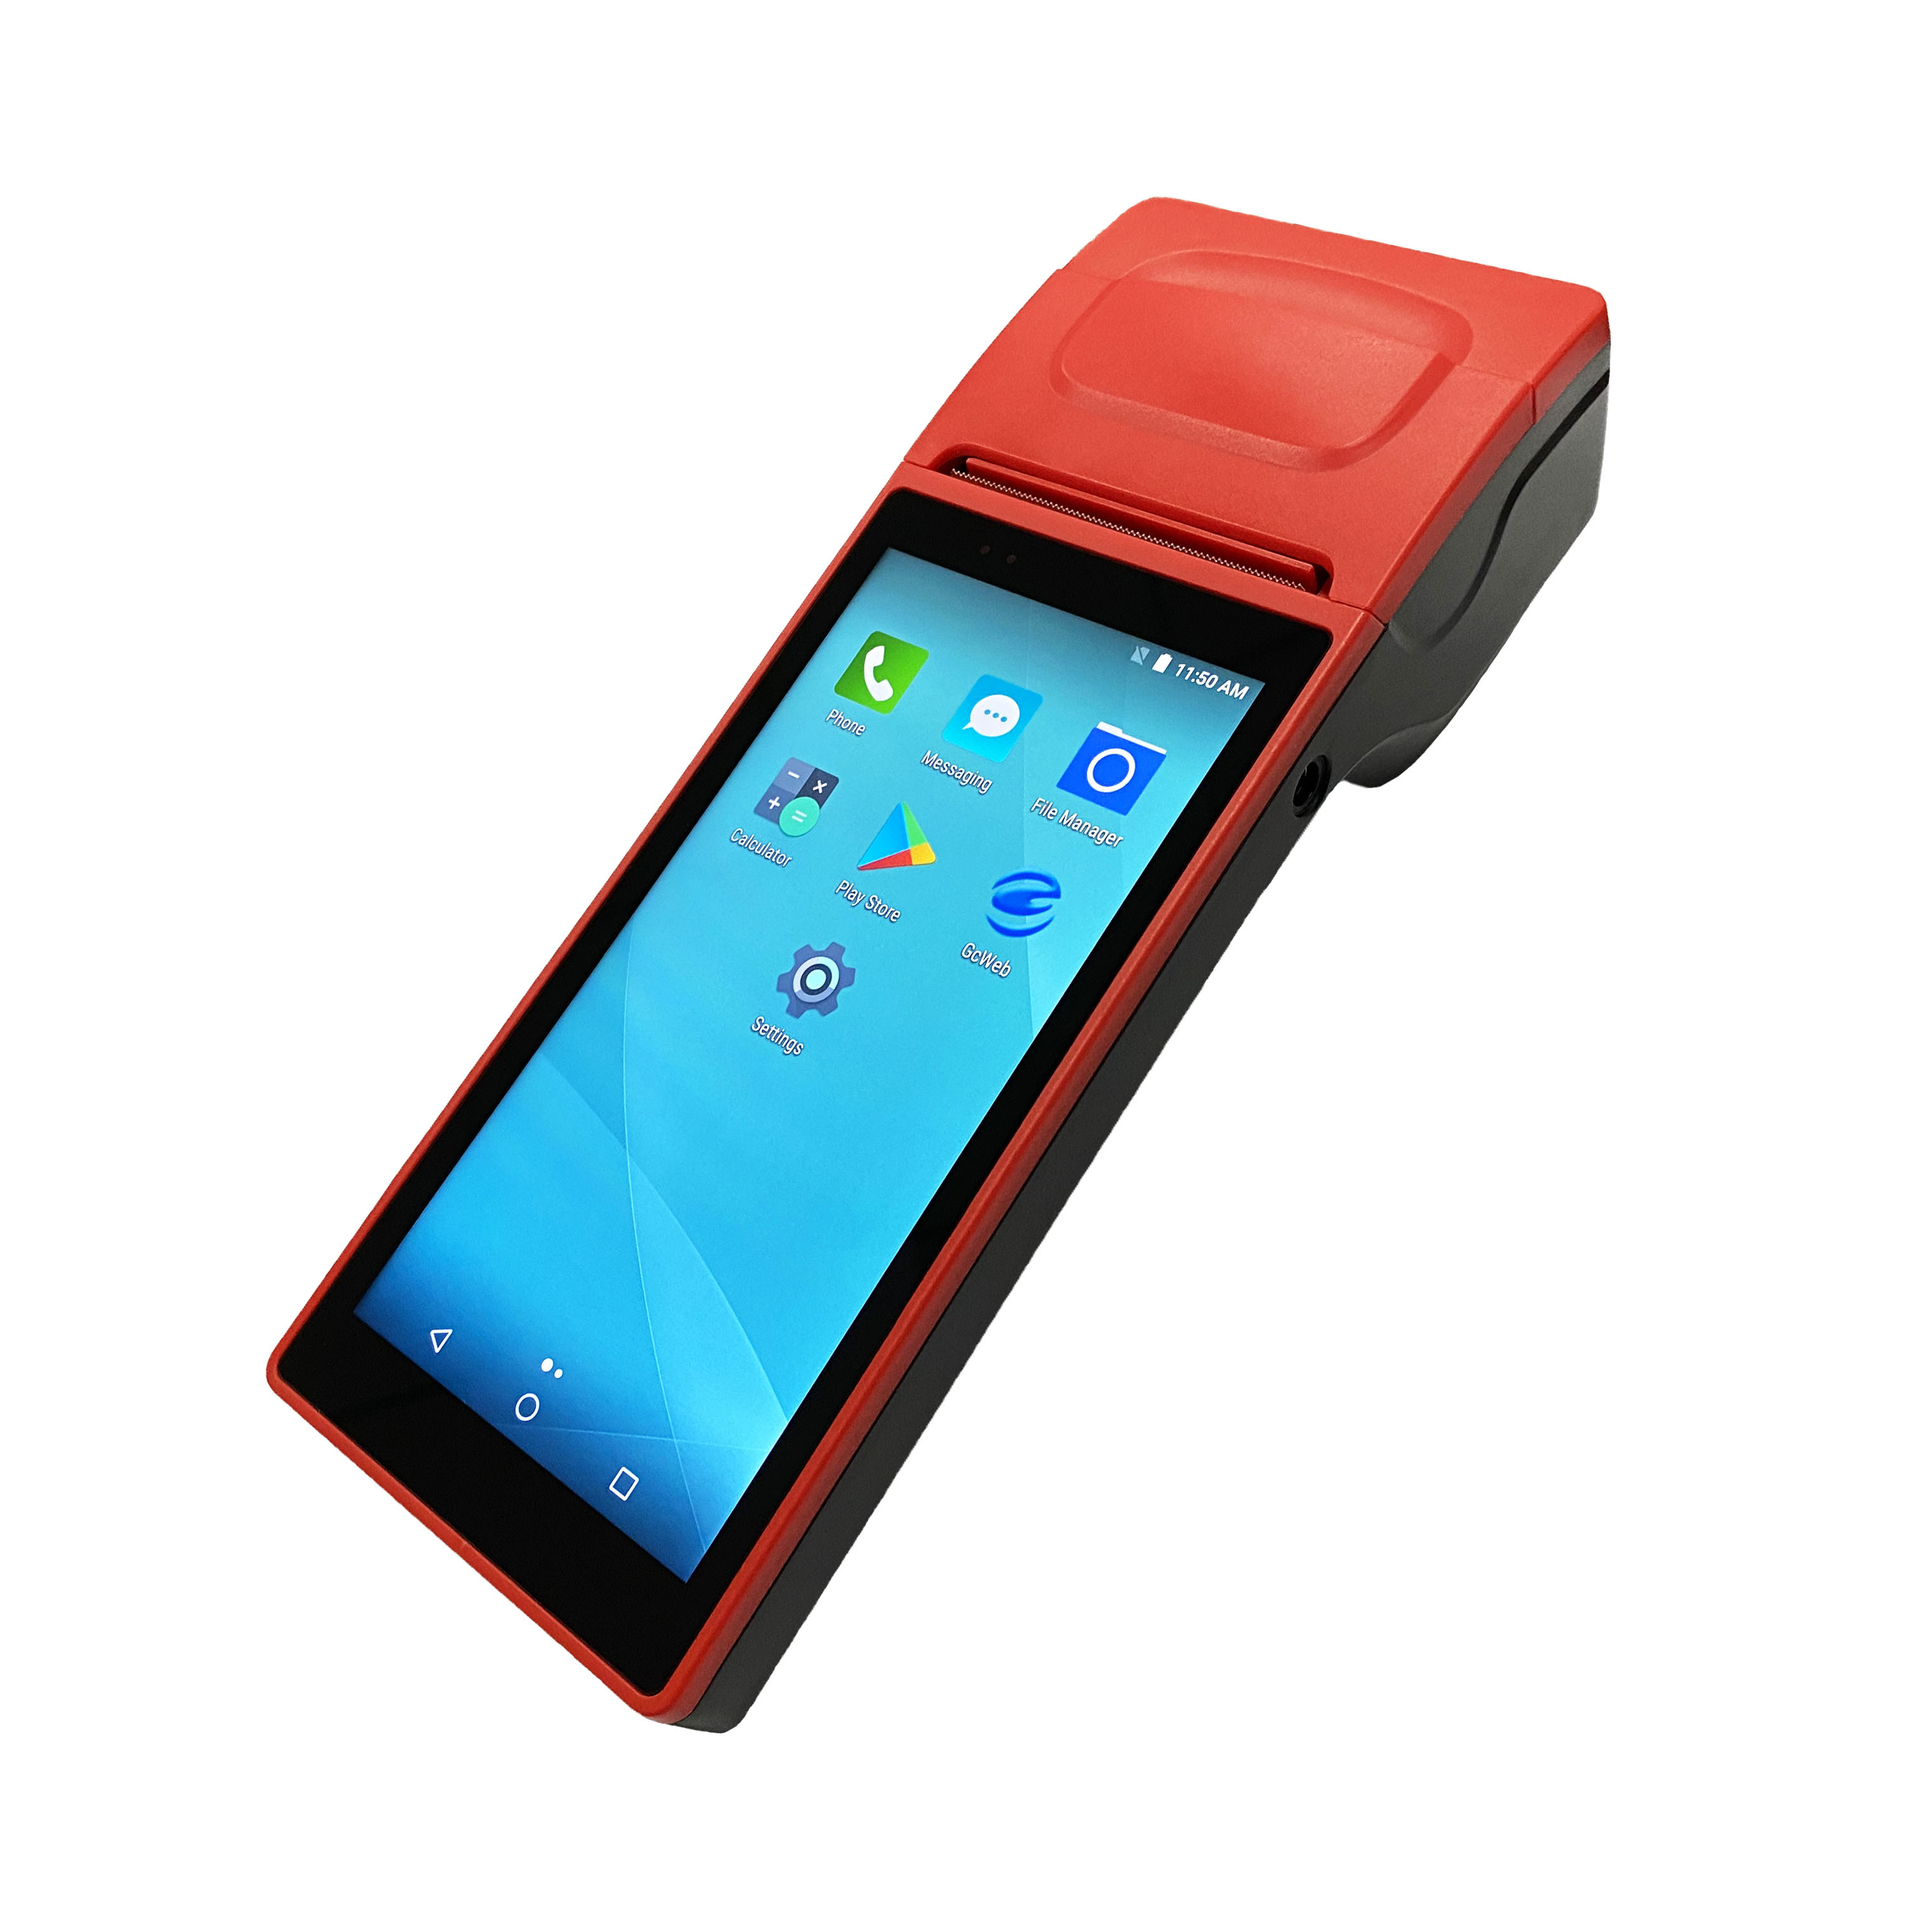 New Launched Handheld 6 Inch Touch Screen All In One Android Pos Terminal for Restaurant